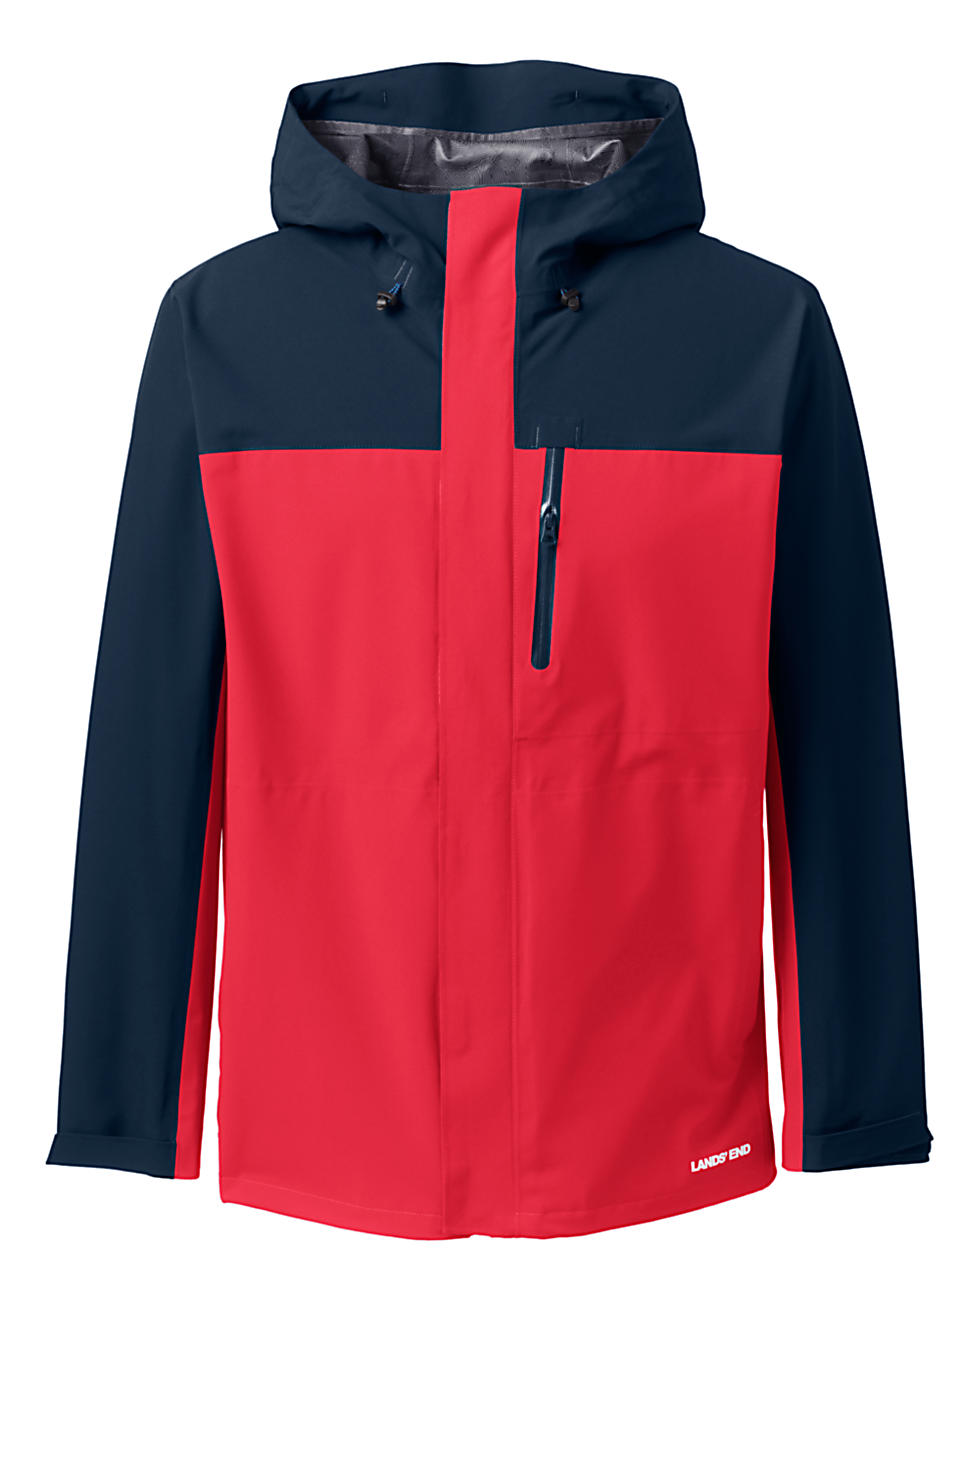 Lands End Mens Waterproof Rain Jacket (various colors/sizes)